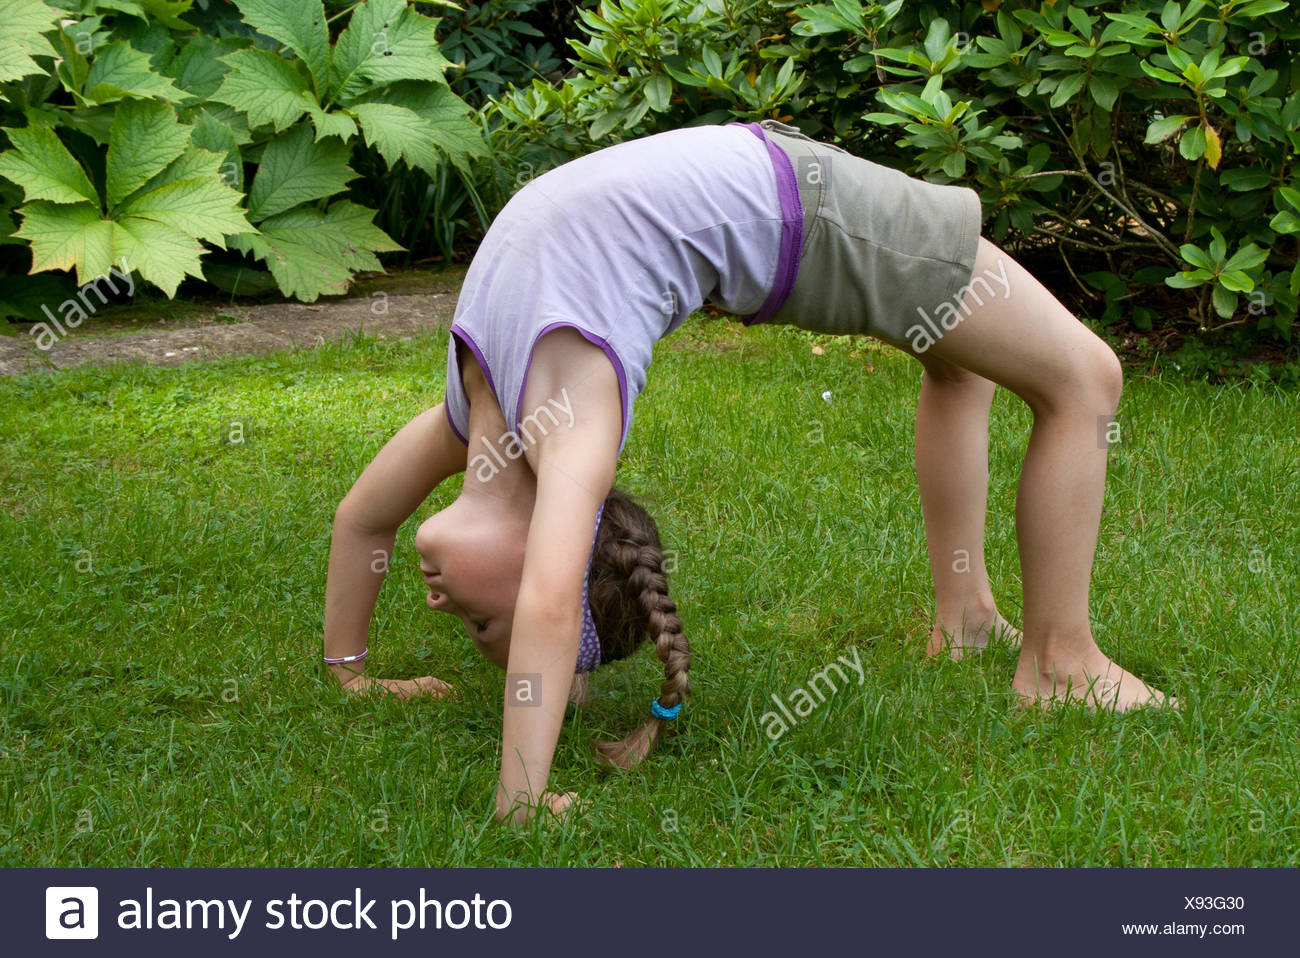 sport sports sporty athletic wiry pithy heavyset tight sporting yoga mobile blond girl girls child children kids healthy plait - Stock Image